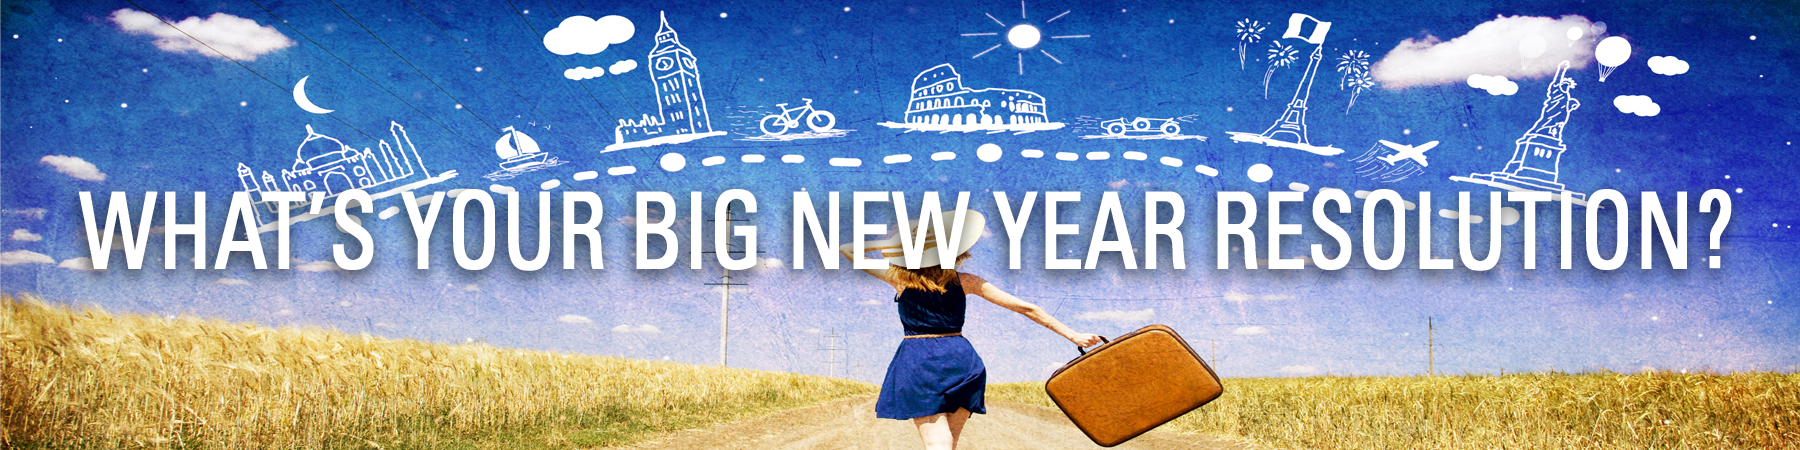 What's Your Big New Year Resolution?